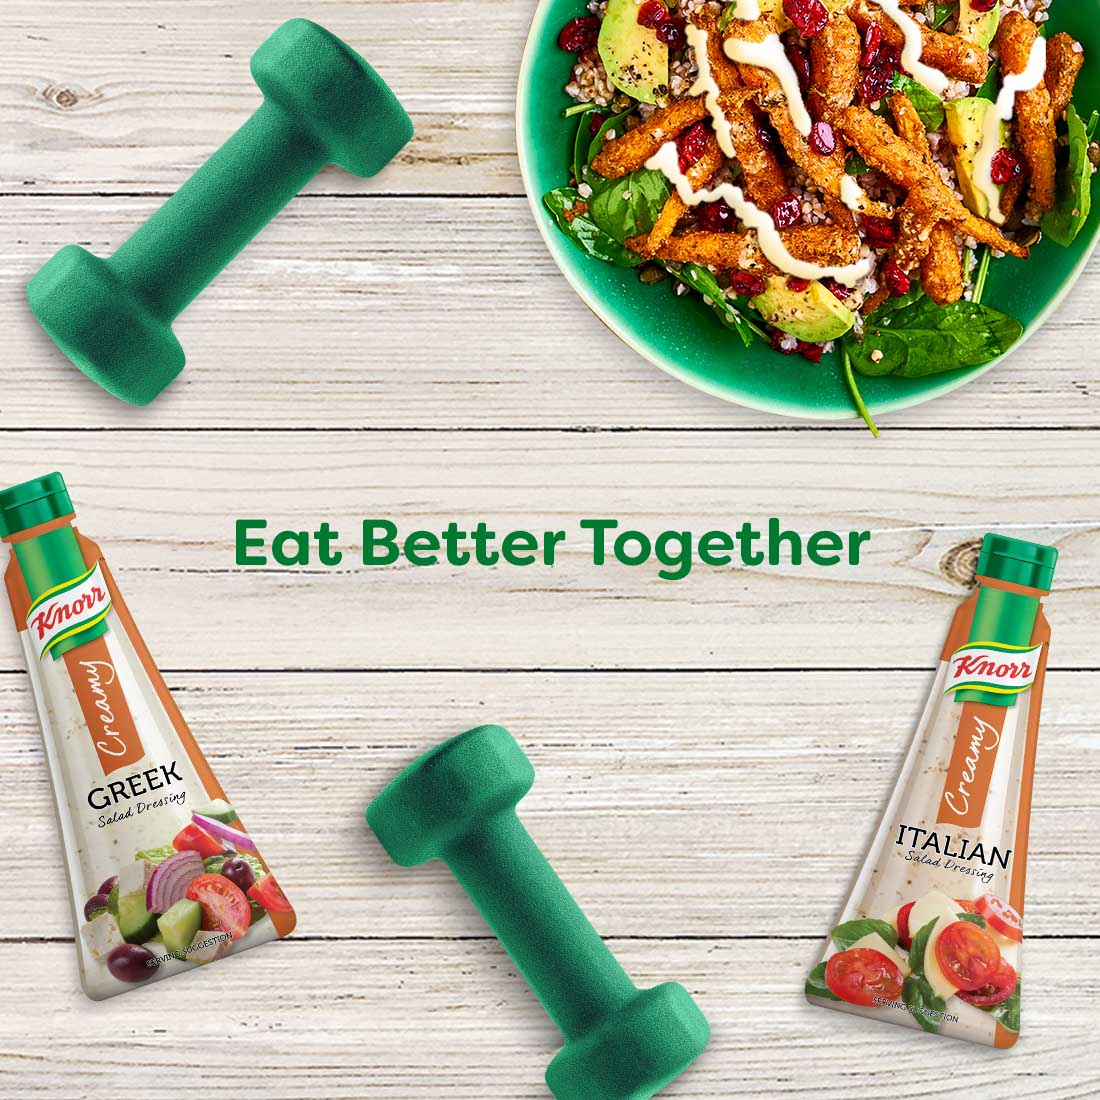 Knorr - Recipes